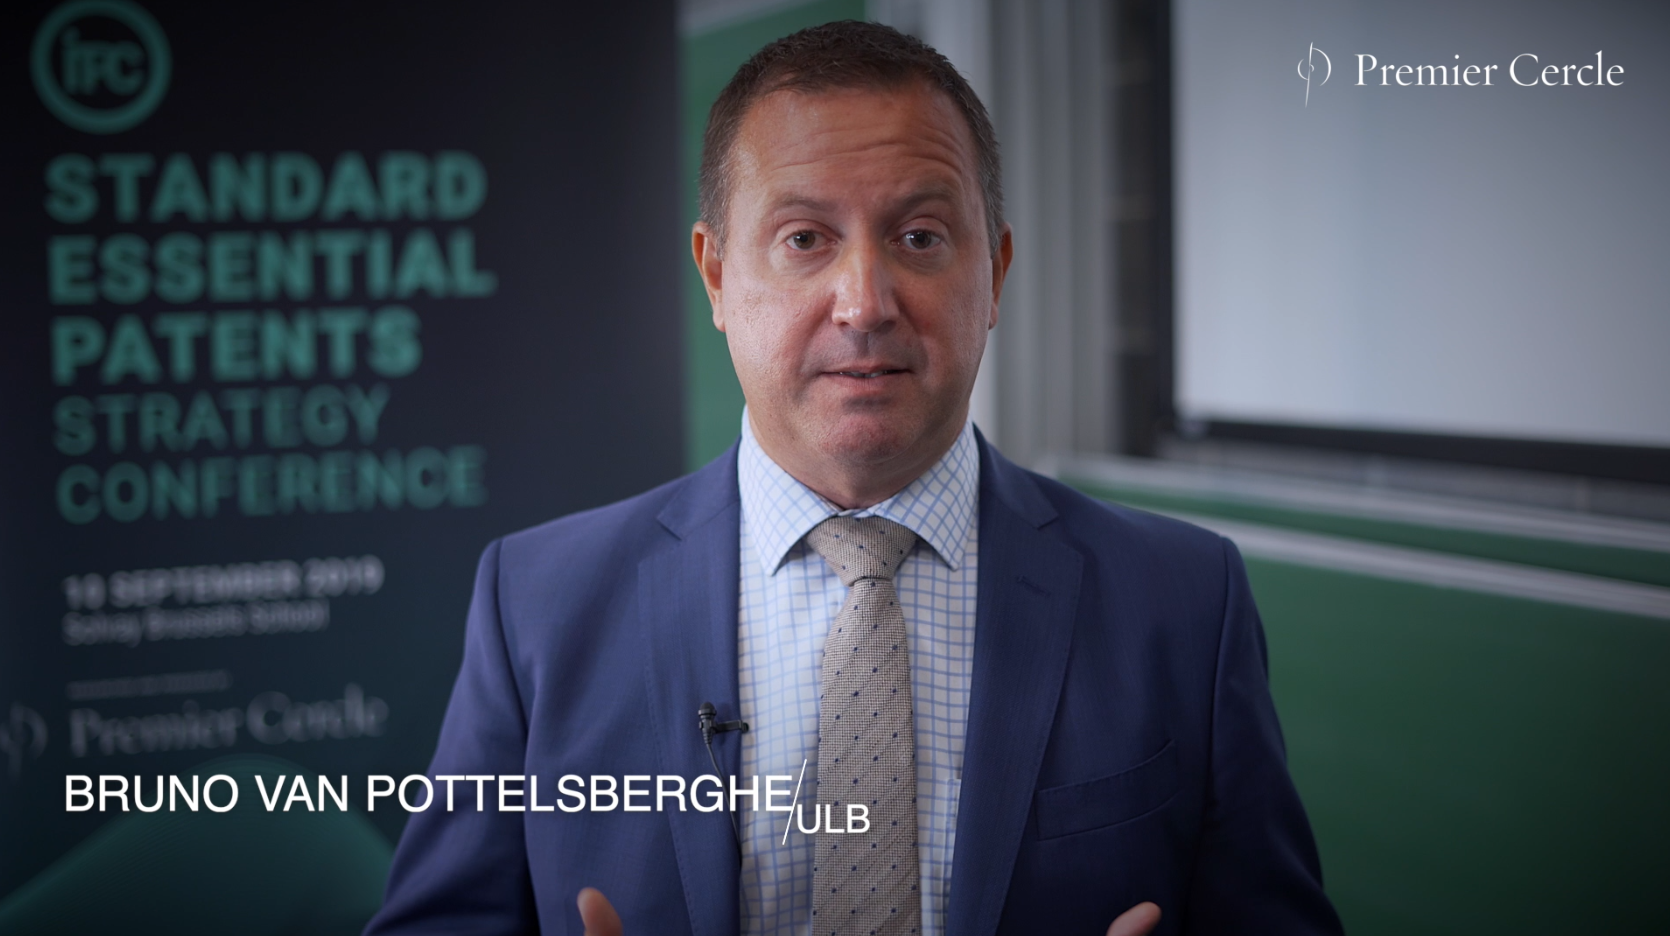 Bruno van Pottelsberghe, Interviewed by Premier Cercle Part 1